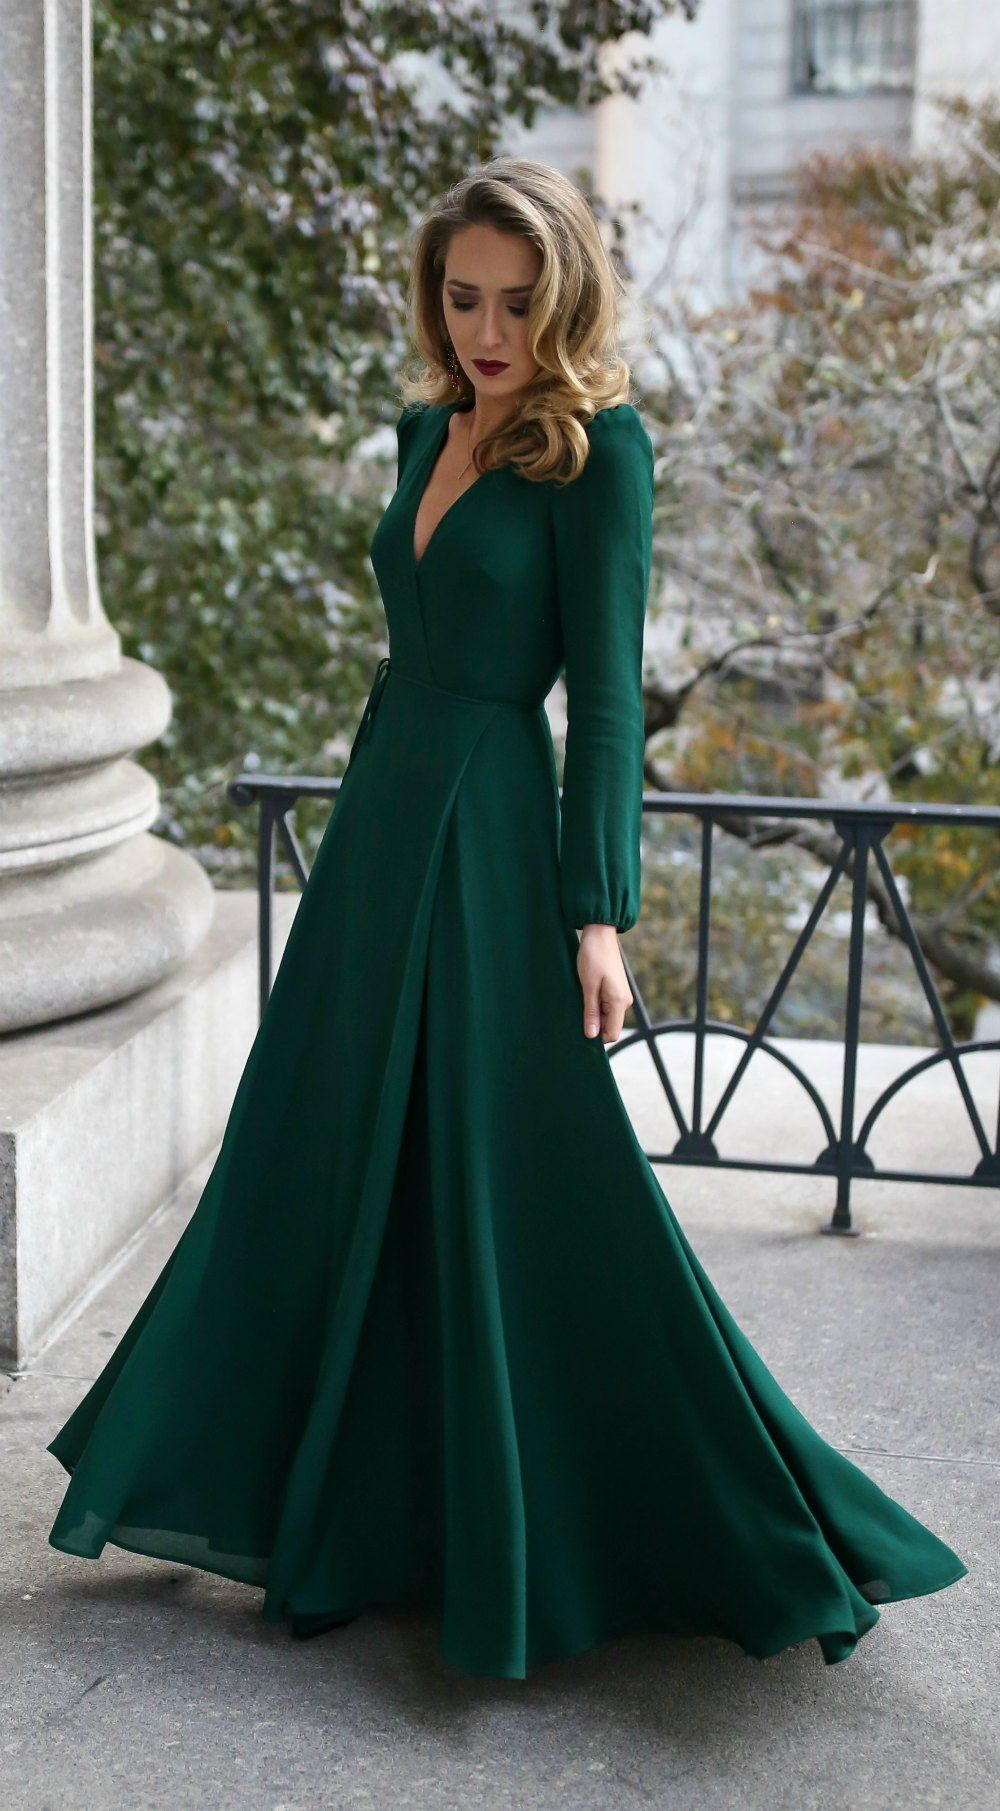 30 Dresses In Days Black Tie Wedding Guest Emerald Green Long